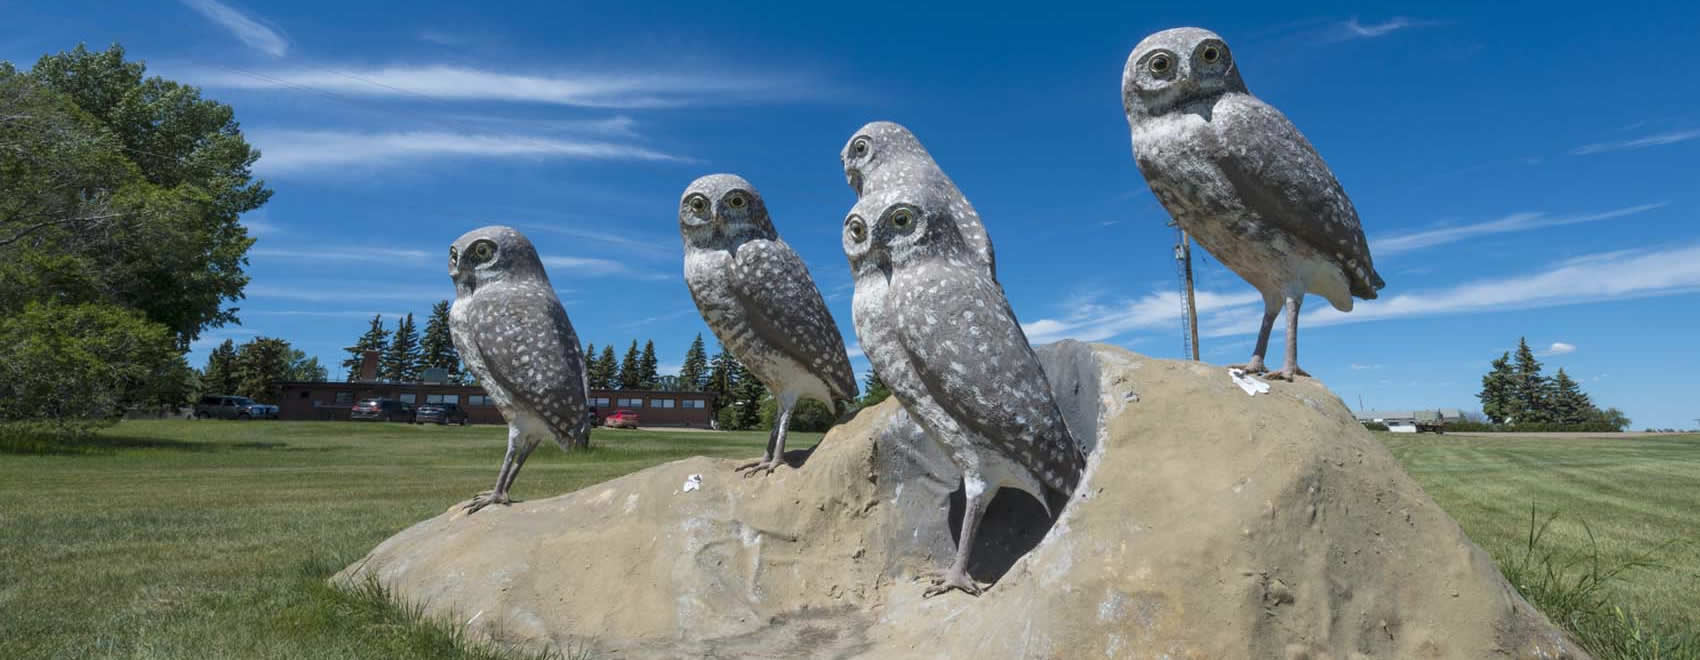 Burrowing Owls - Wildlife Sculptures of Leader Saskatchewan - Photo by James R Page